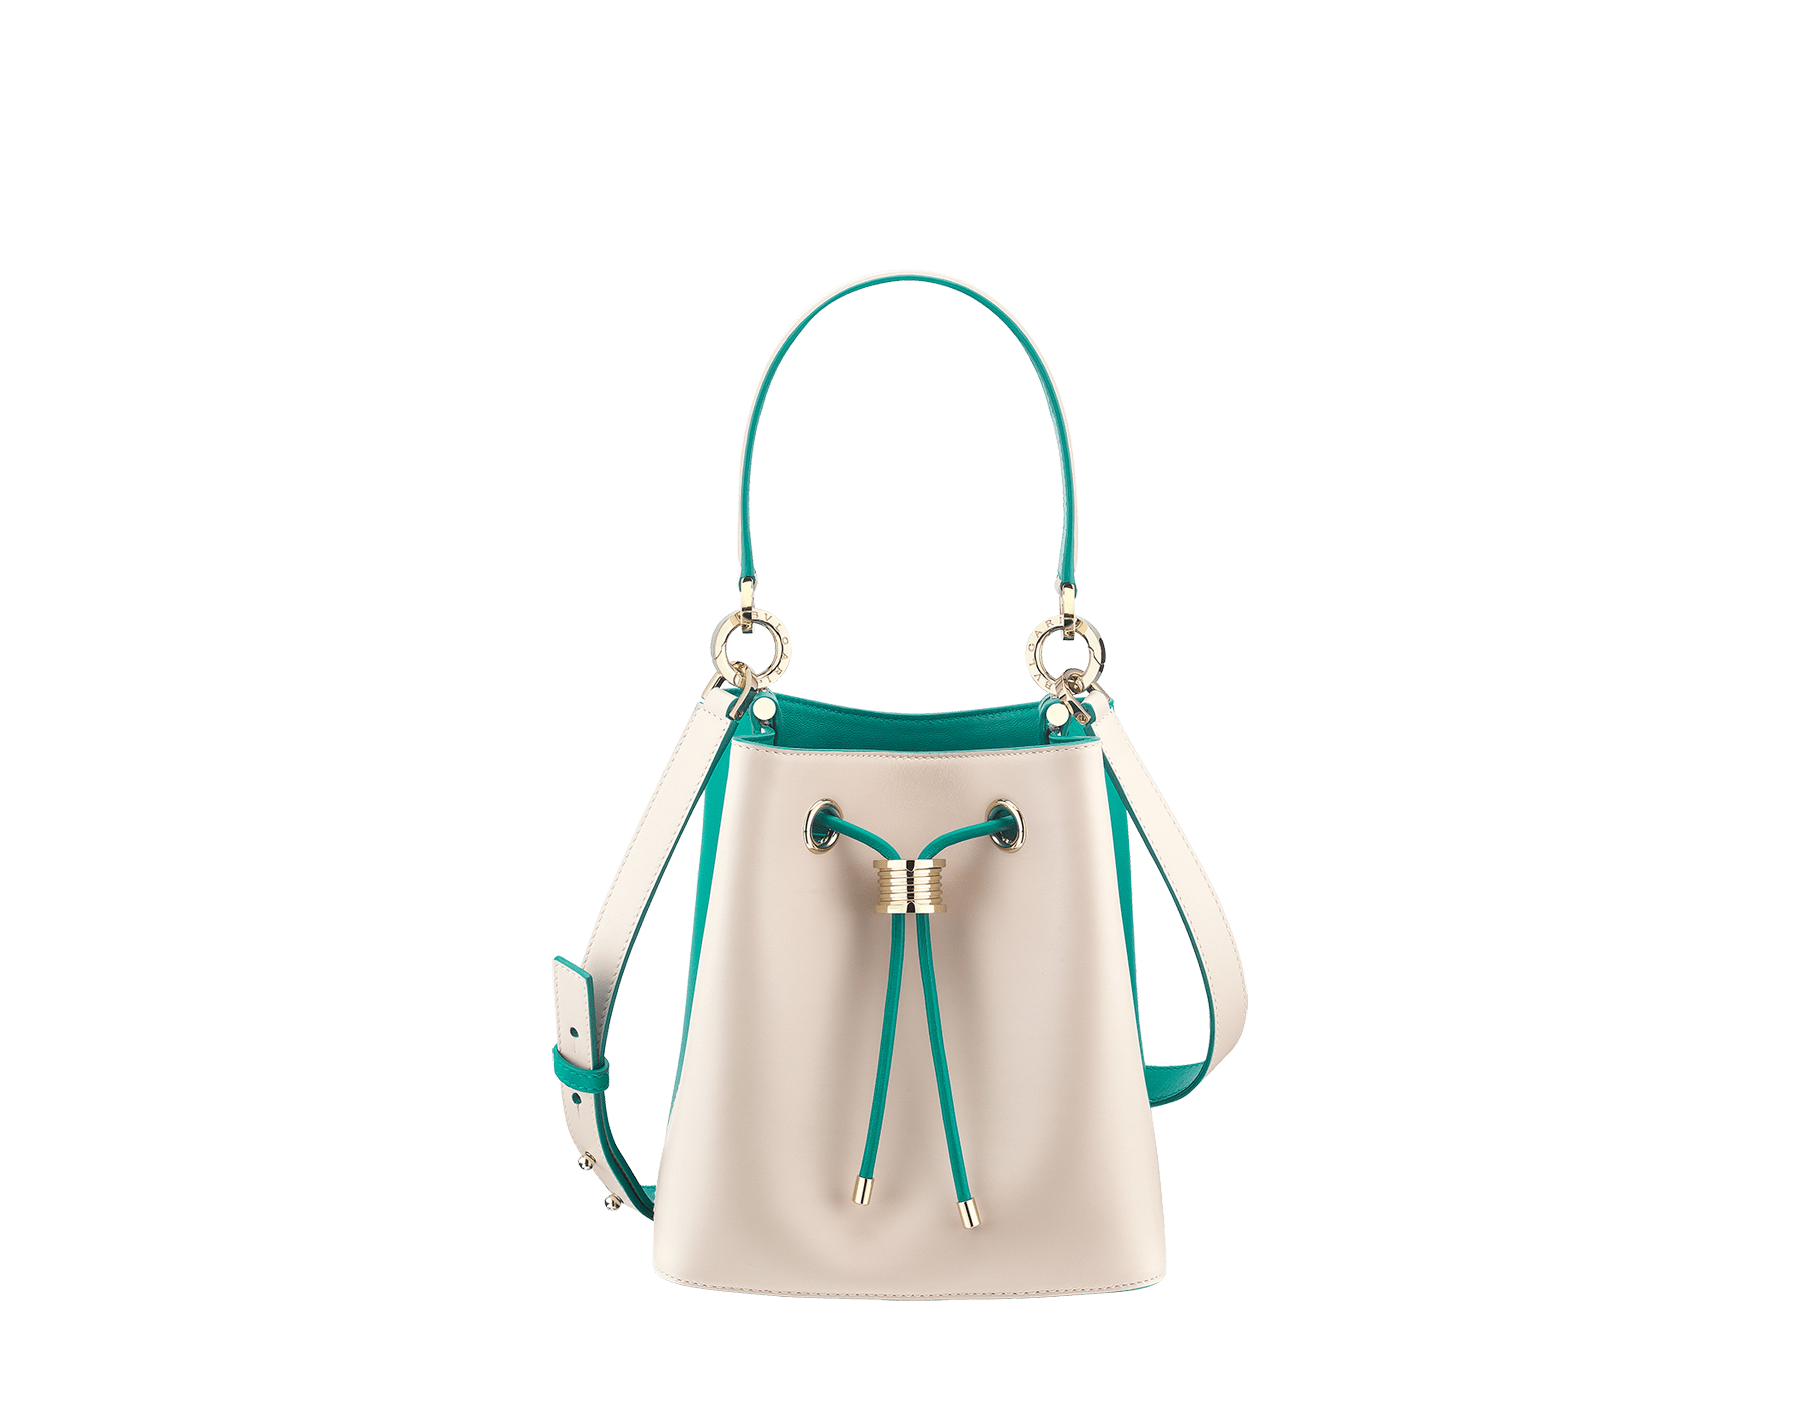 Bucket B.zero1 in milky opal and tropical turquoise smooth calf leather and tropical turquoise nappa lining. Hardware in light gold-plated brass, featuring a B.zero1 décor. 288209 image 1